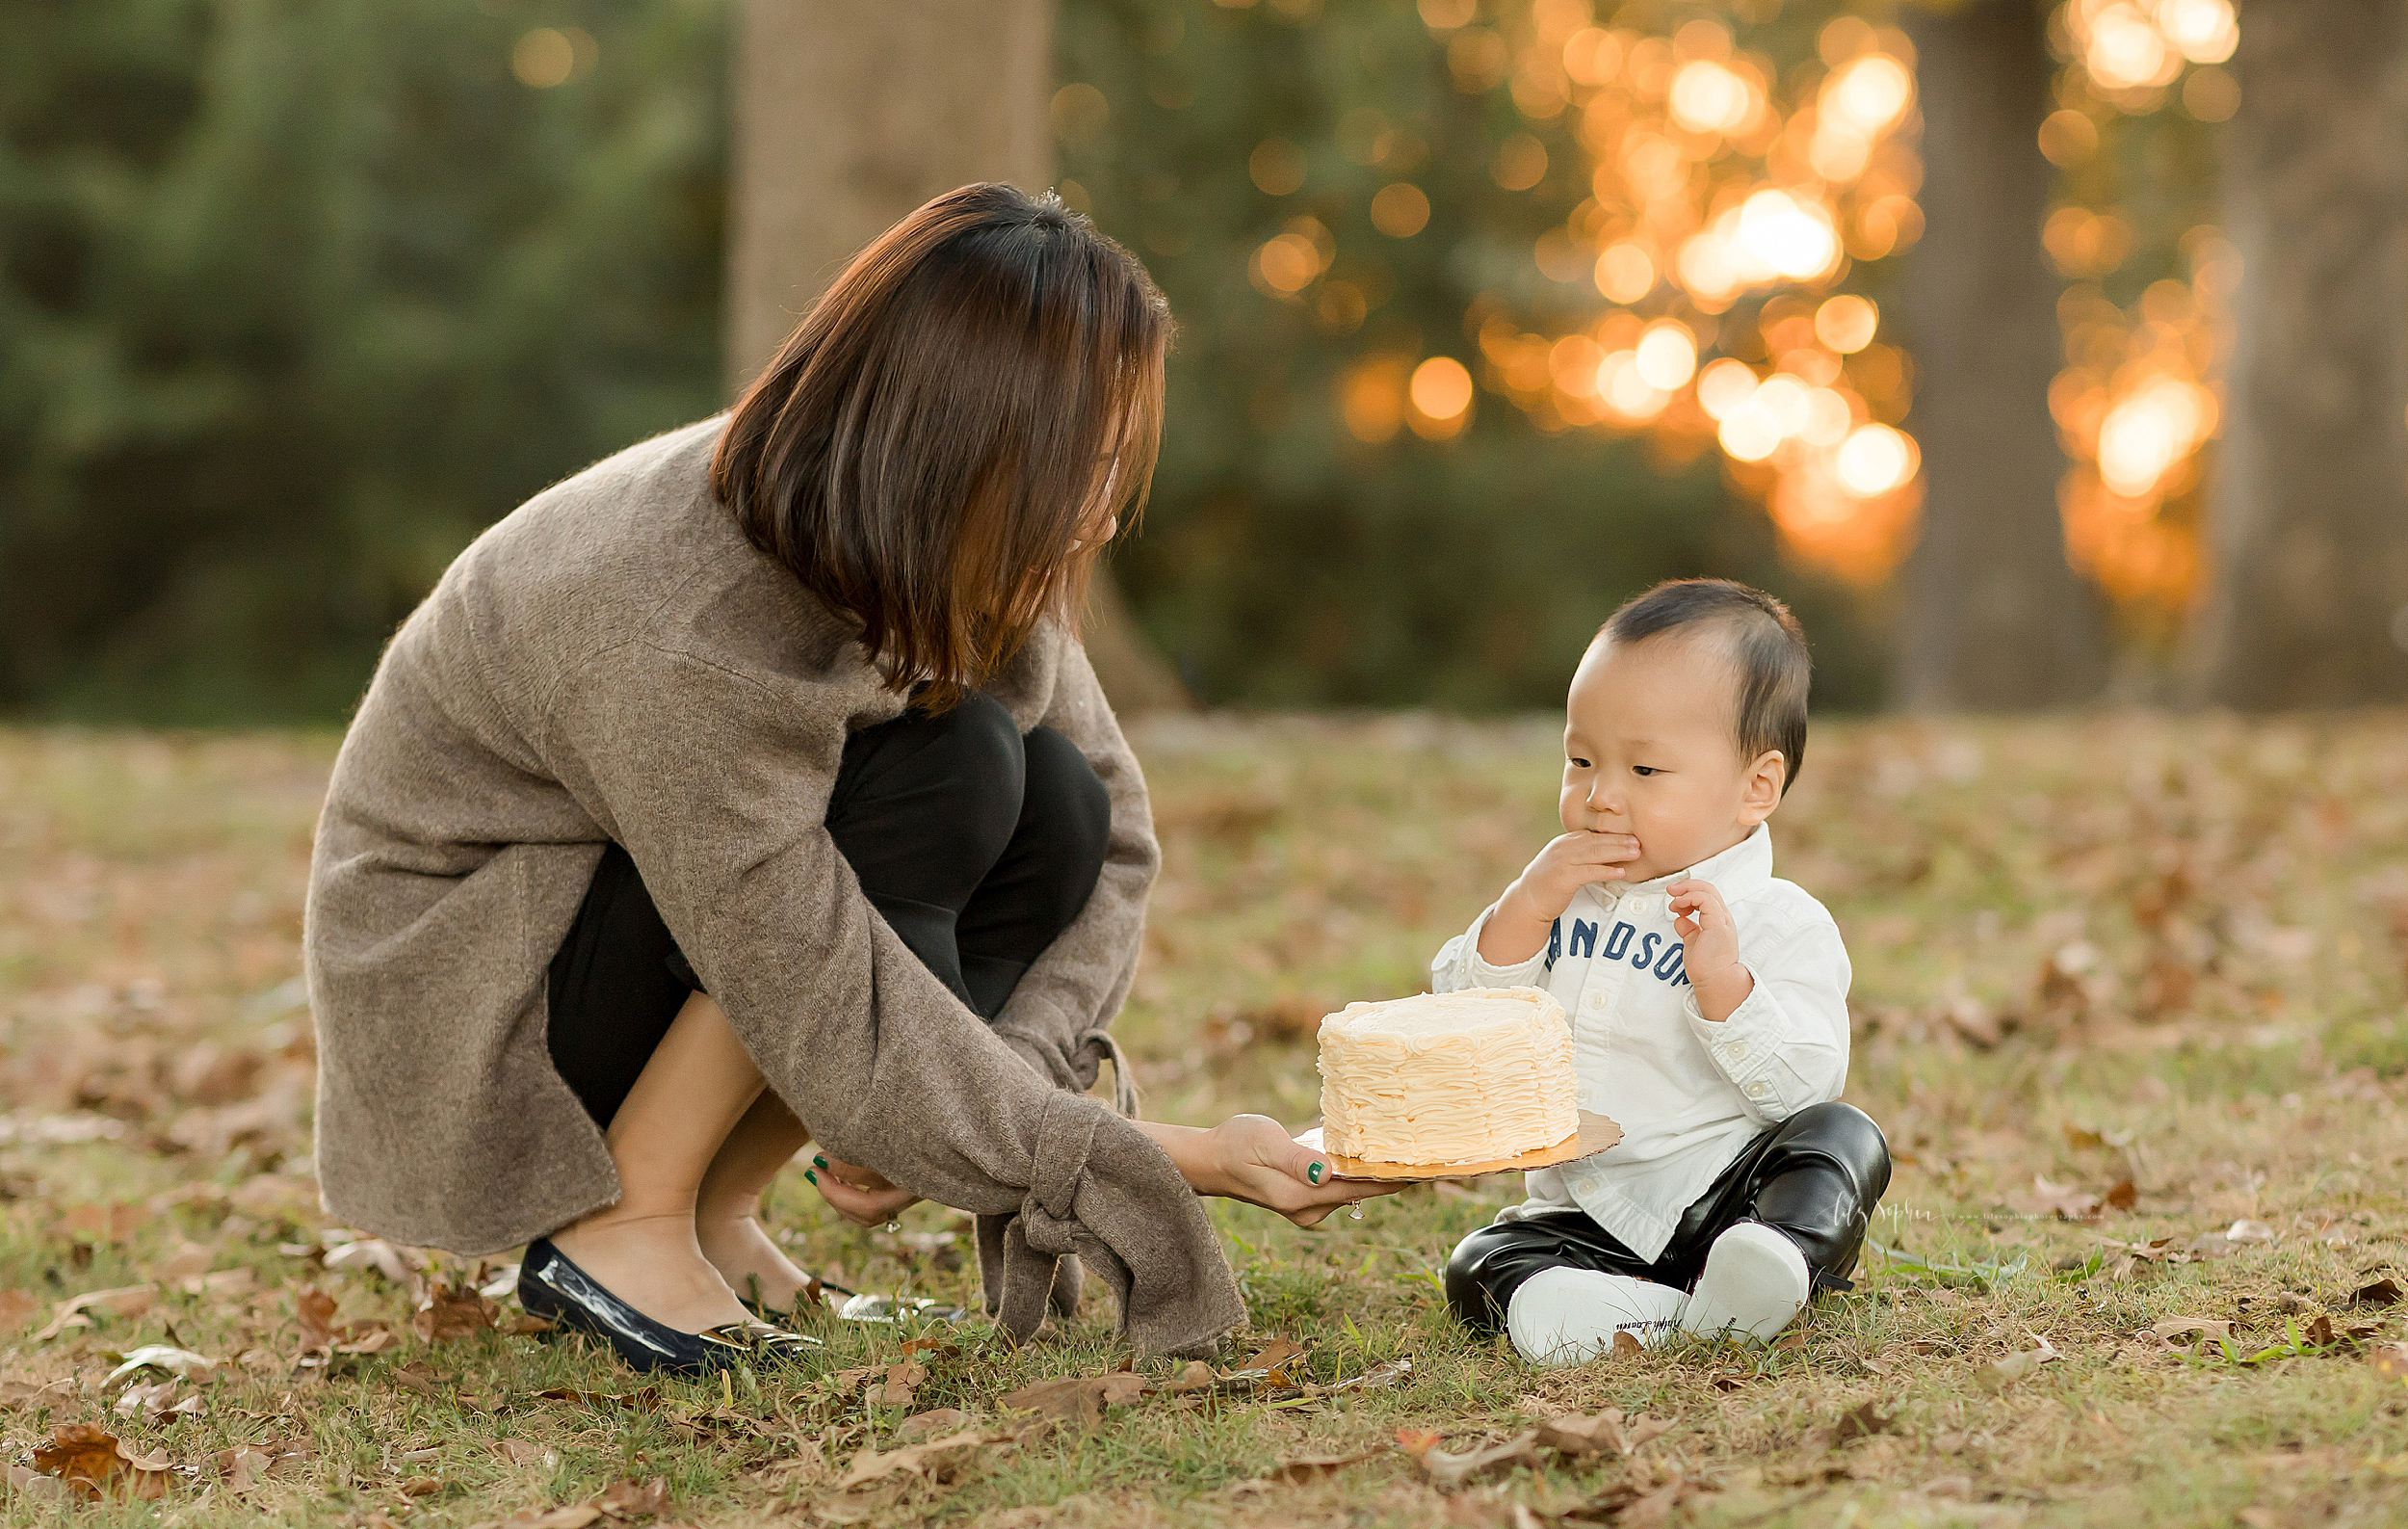 atlanta-buckhead-brookhaven-decatur-lily-sophia-photography--photographer-portraits-grant-park-intown-park-sunset-first-birthday-cake-smash-one-year-old-outdoors-cool-asian-american-family_0092.jpg